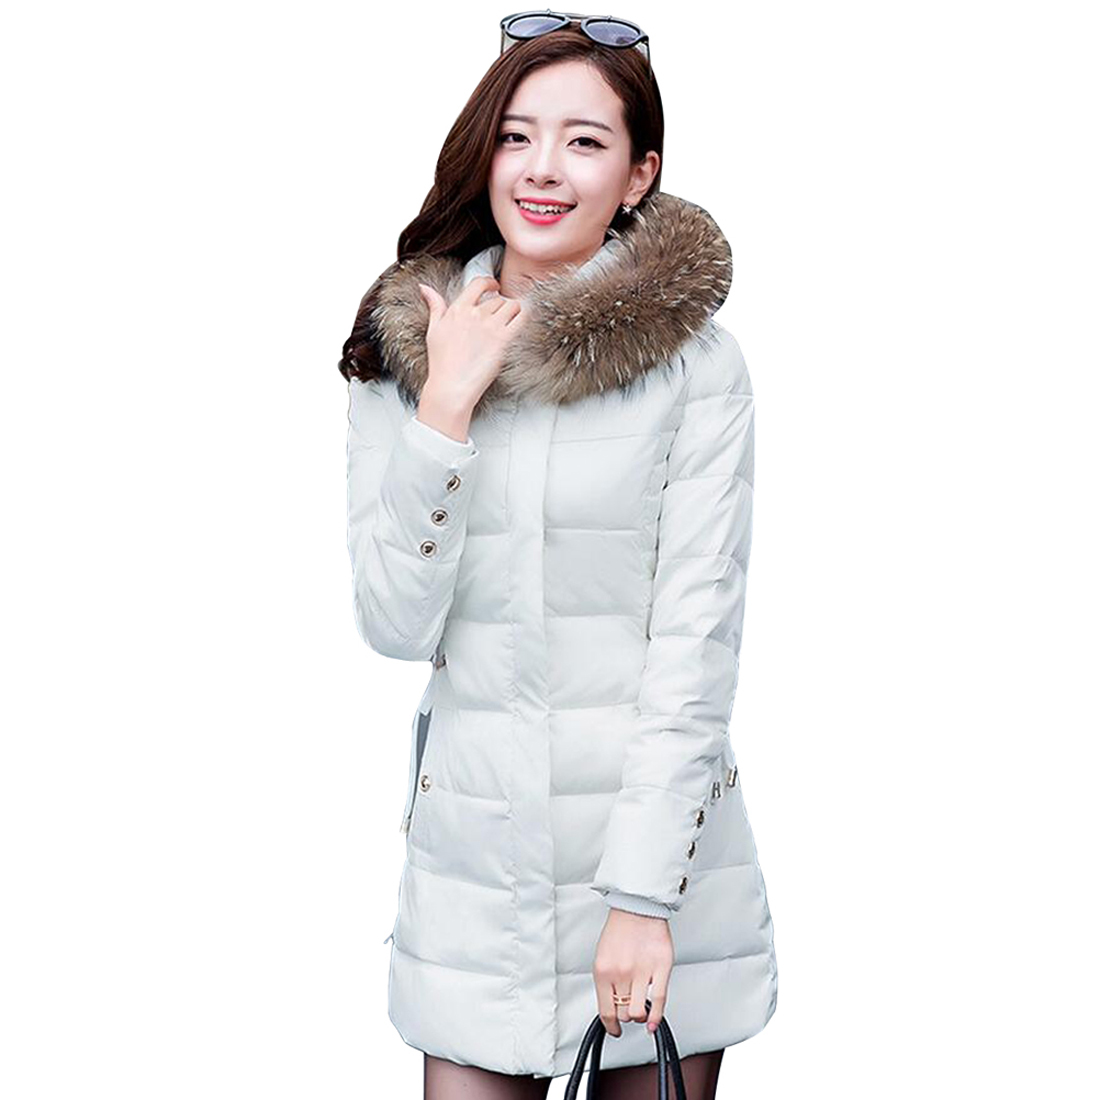 Tengo New Long Thickening Cotton-padded Jacket Women Warm Outwear CoatОдежда и ак�е��уары<br><br><br>Aliexpress